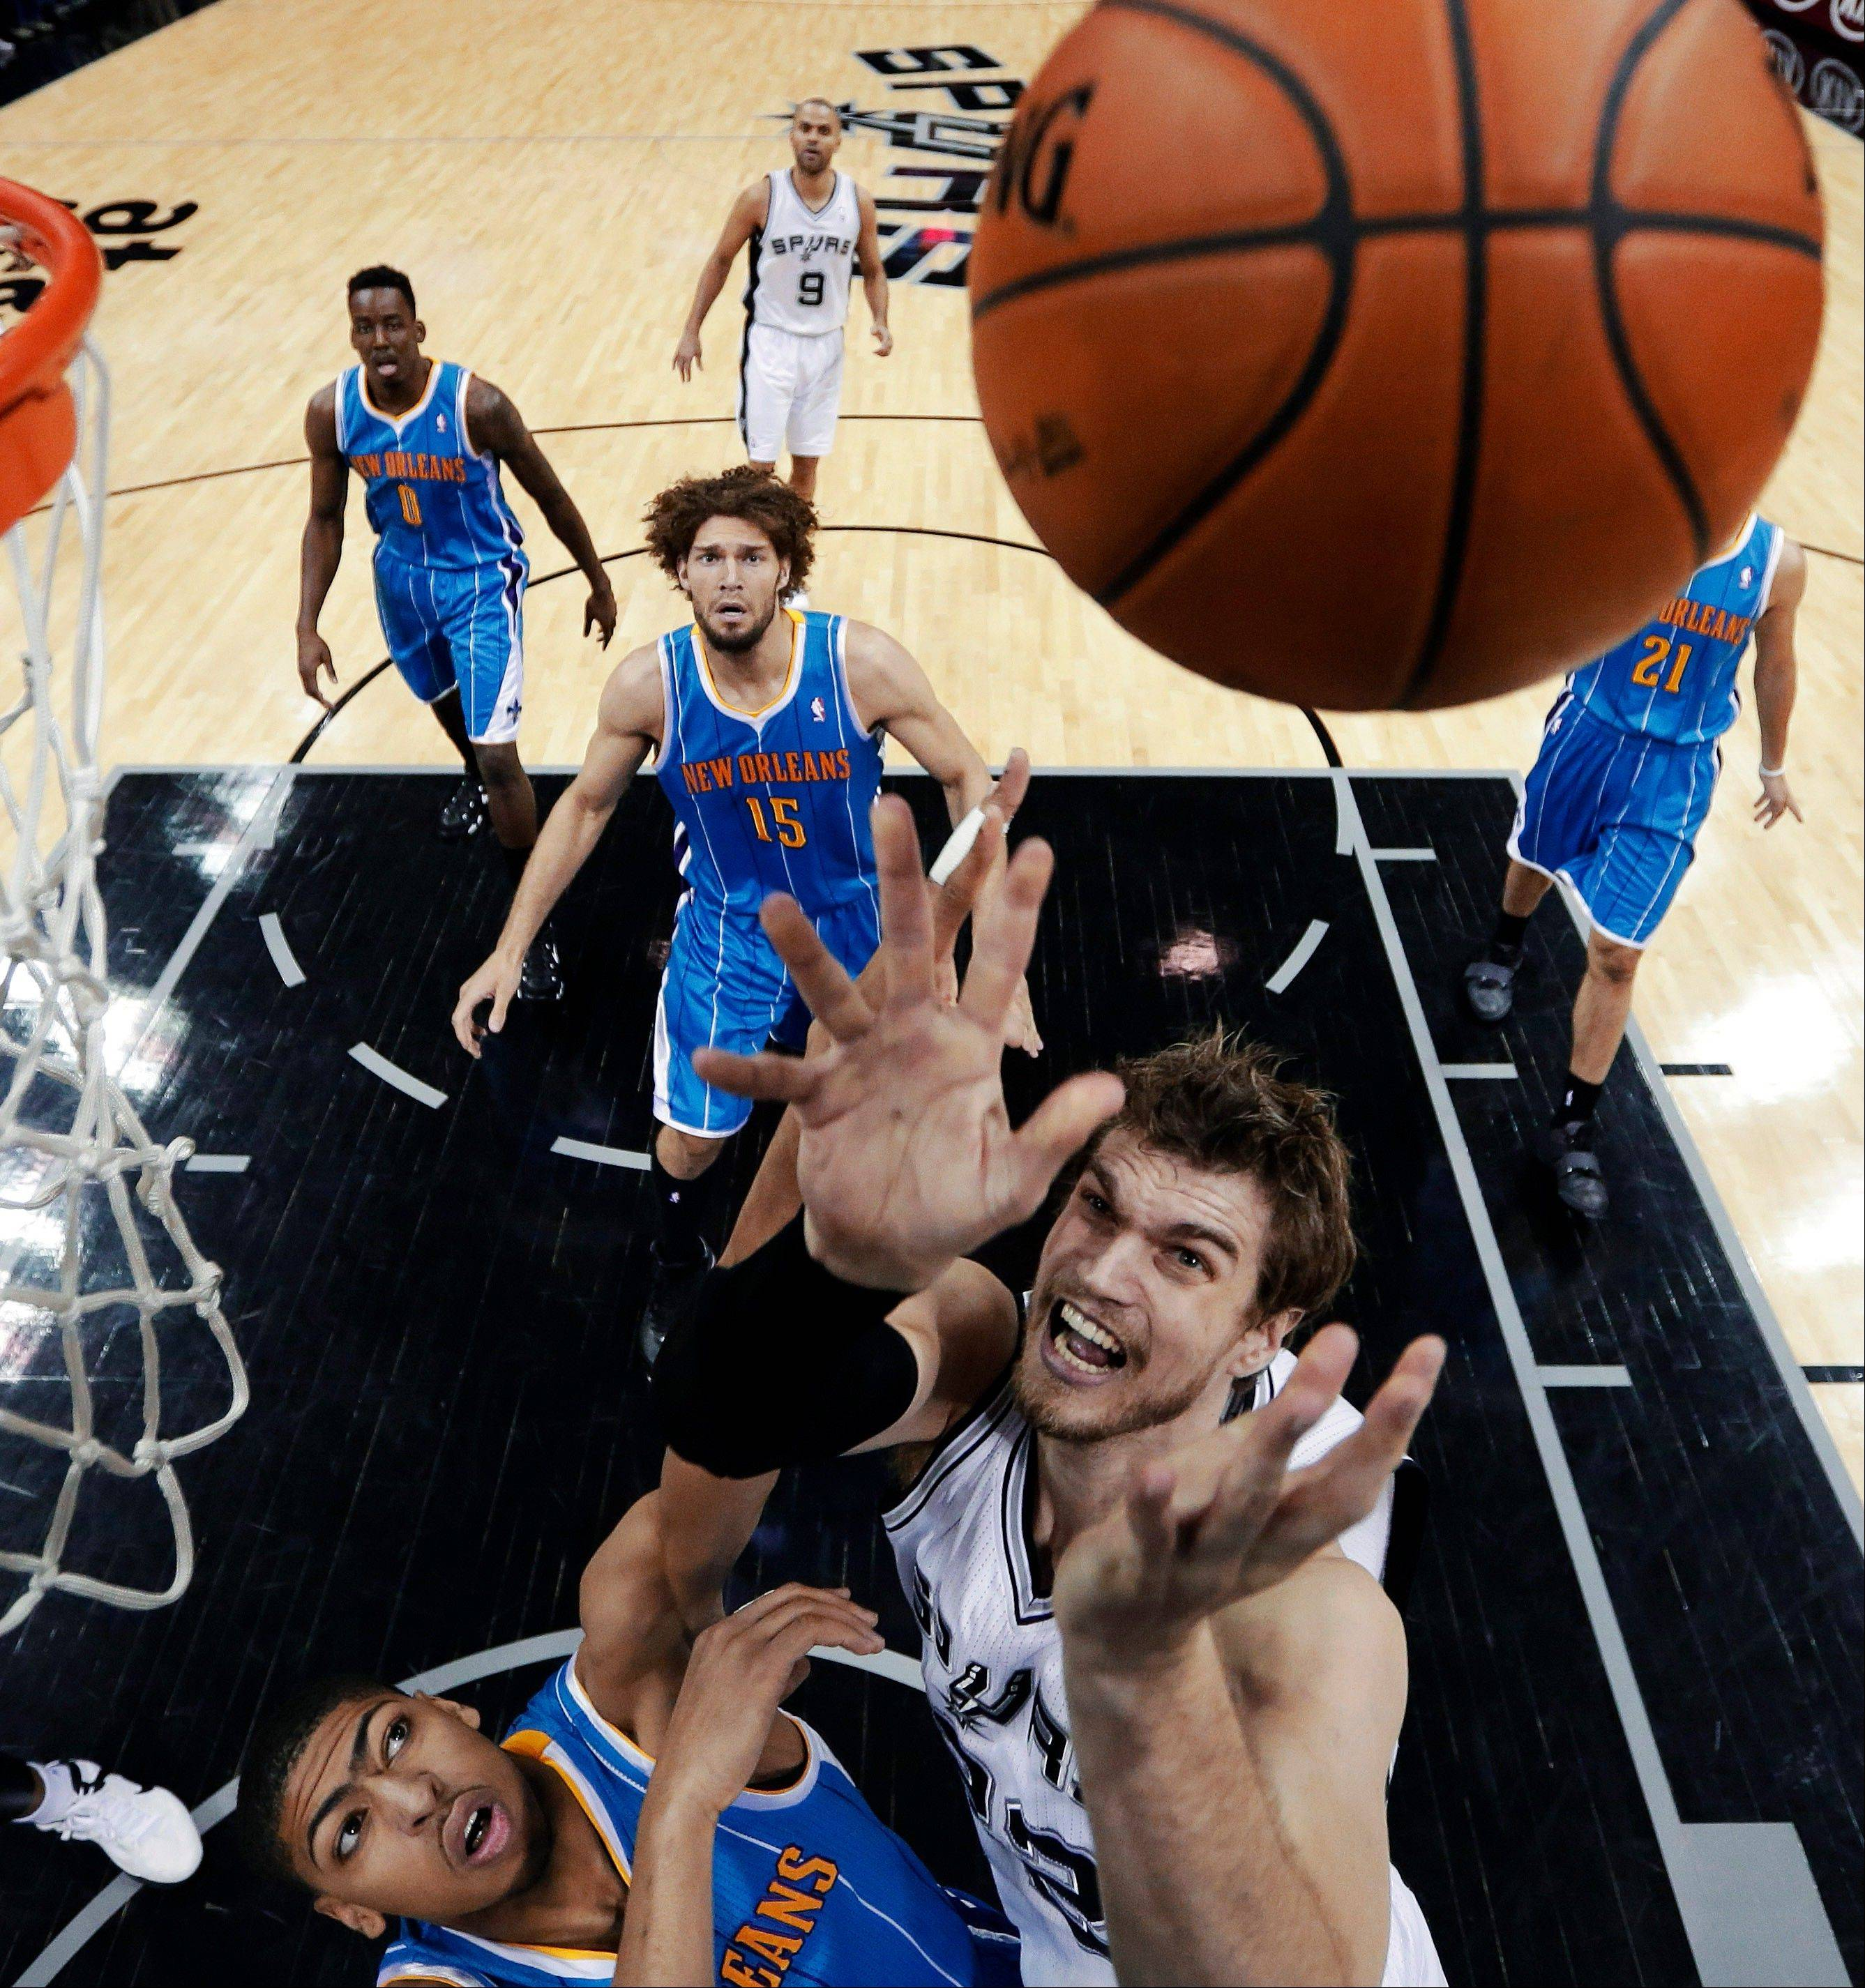 New Orleans Hornets� Anthony Davis, bottom left, and San Antonio Spurs� Tiago Splitter, bottom right, of Brazil, reach for a rebound during the first quarter of an NBA basketball game, Wednesday, Jan. 23, 2013, in San Antonio.